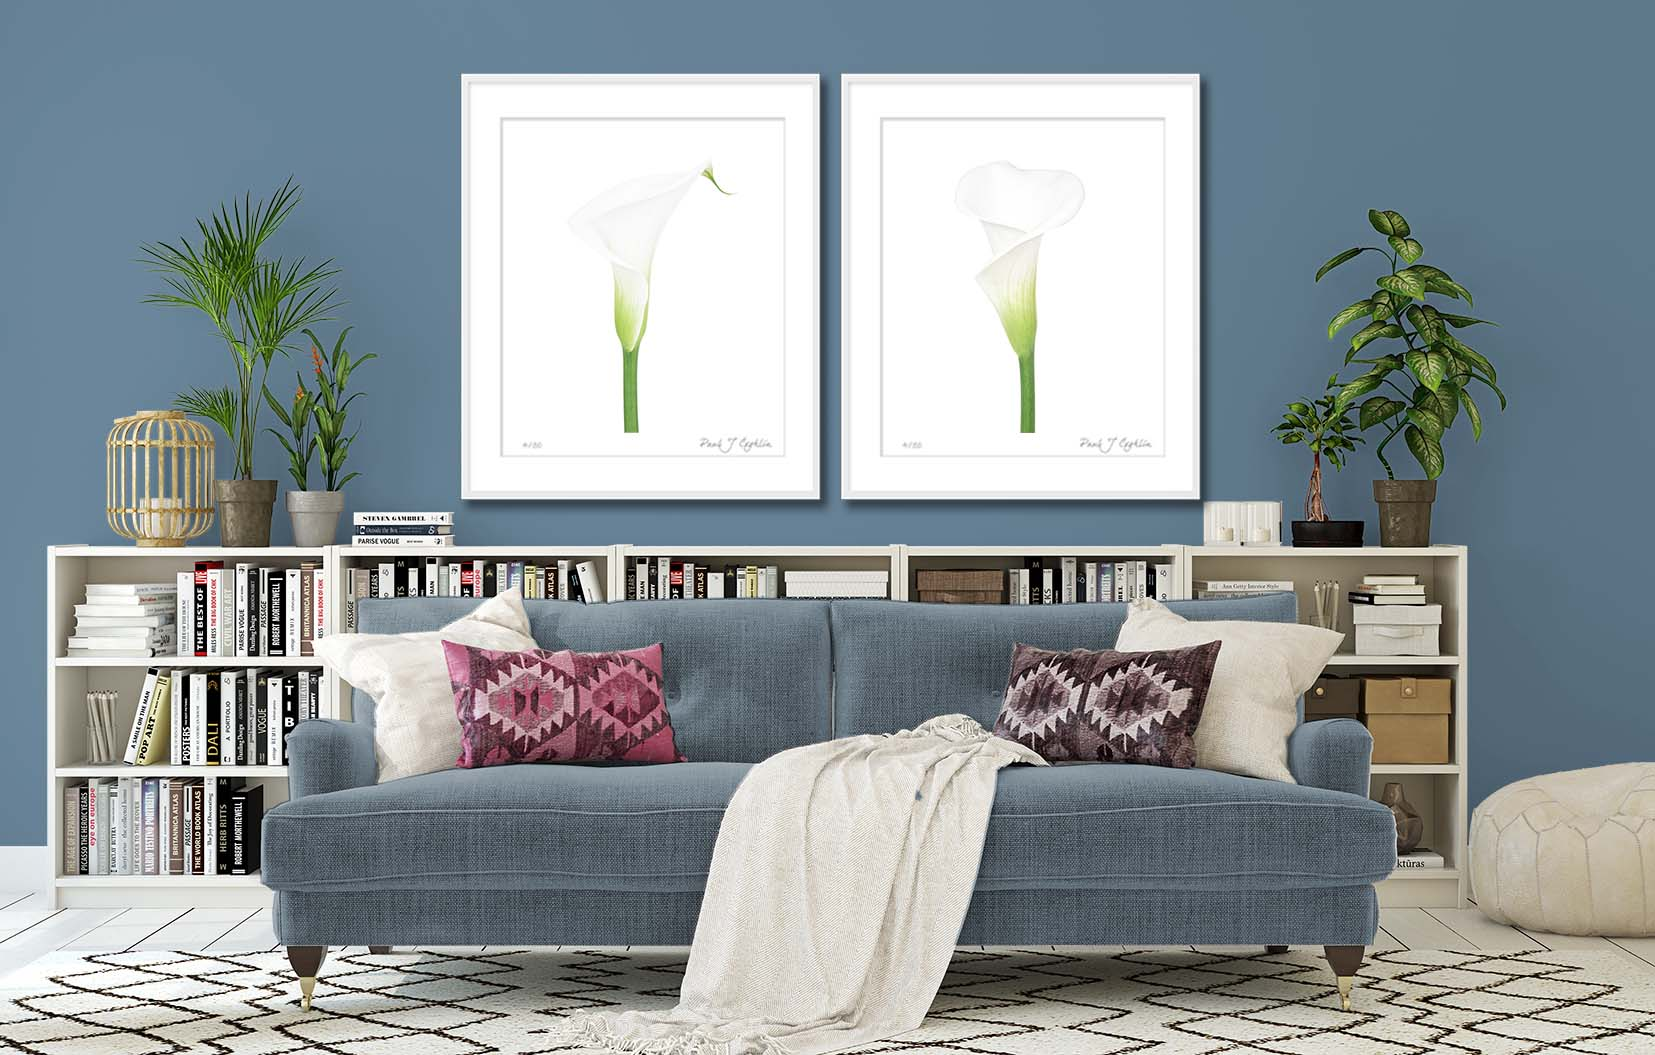 Arum Lily (Z. aethiopica) on White I + II. Limited edition photographic prints by fine art photographer Paul Coghlin FBIPP.